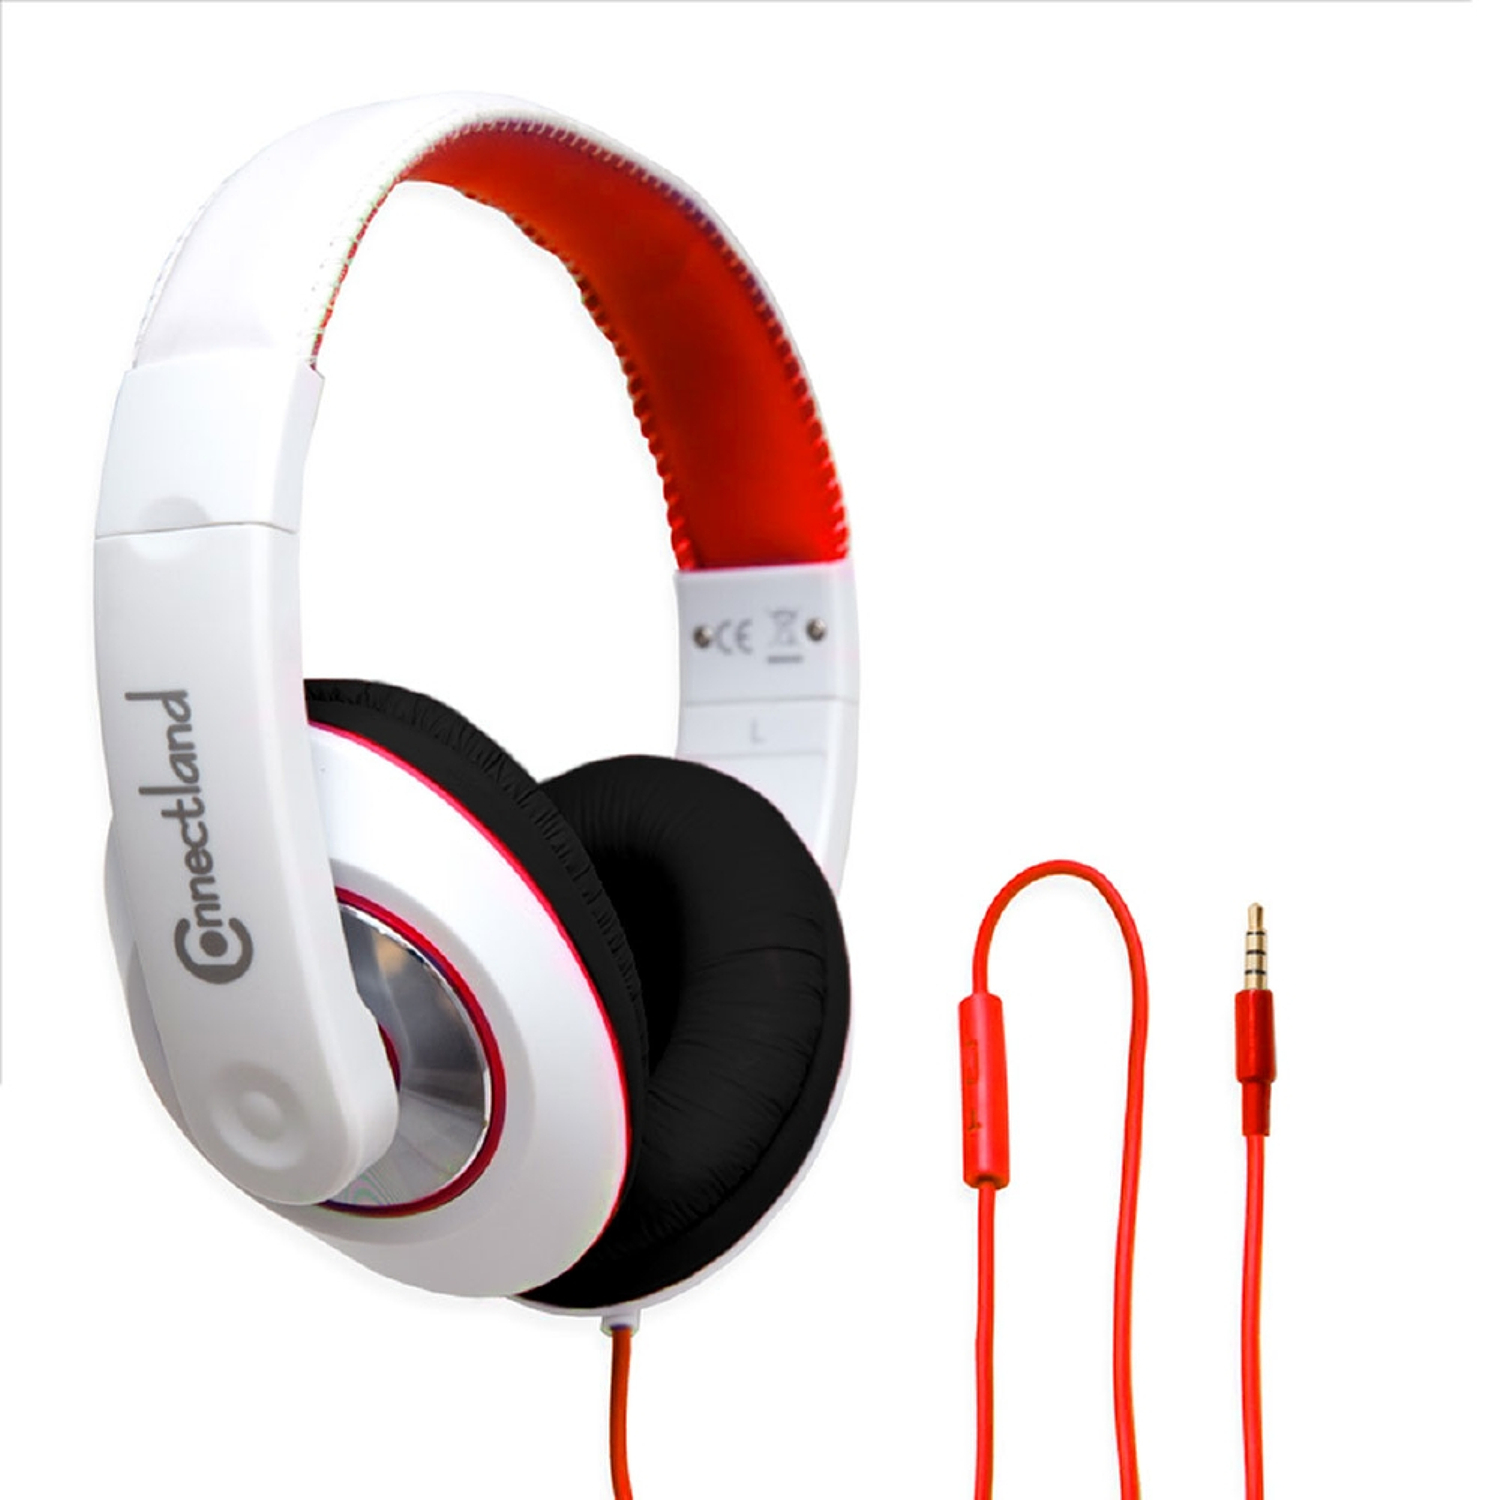 GamesterGear Adjustable Over the Ear Stereo Headset Wired Headphone with In-Line Microphone